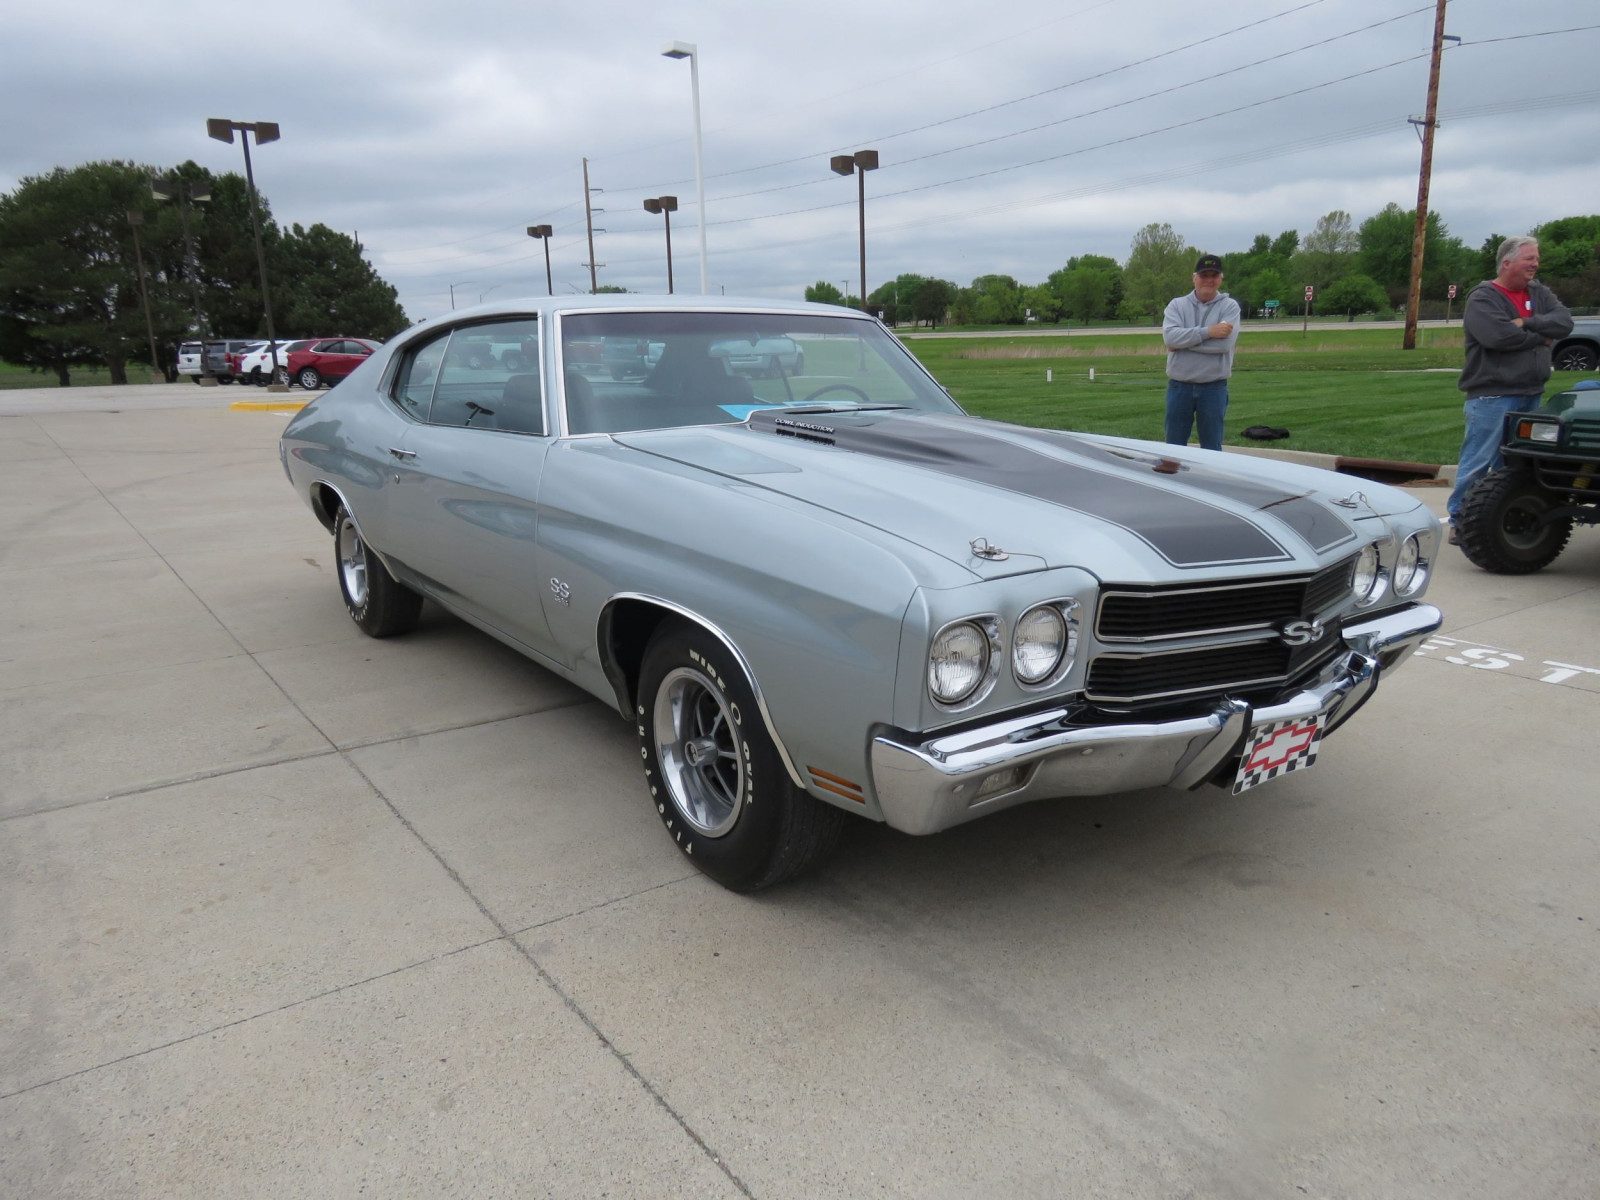 1970 Chevrolet Chevelle SS Coupe - Image 5